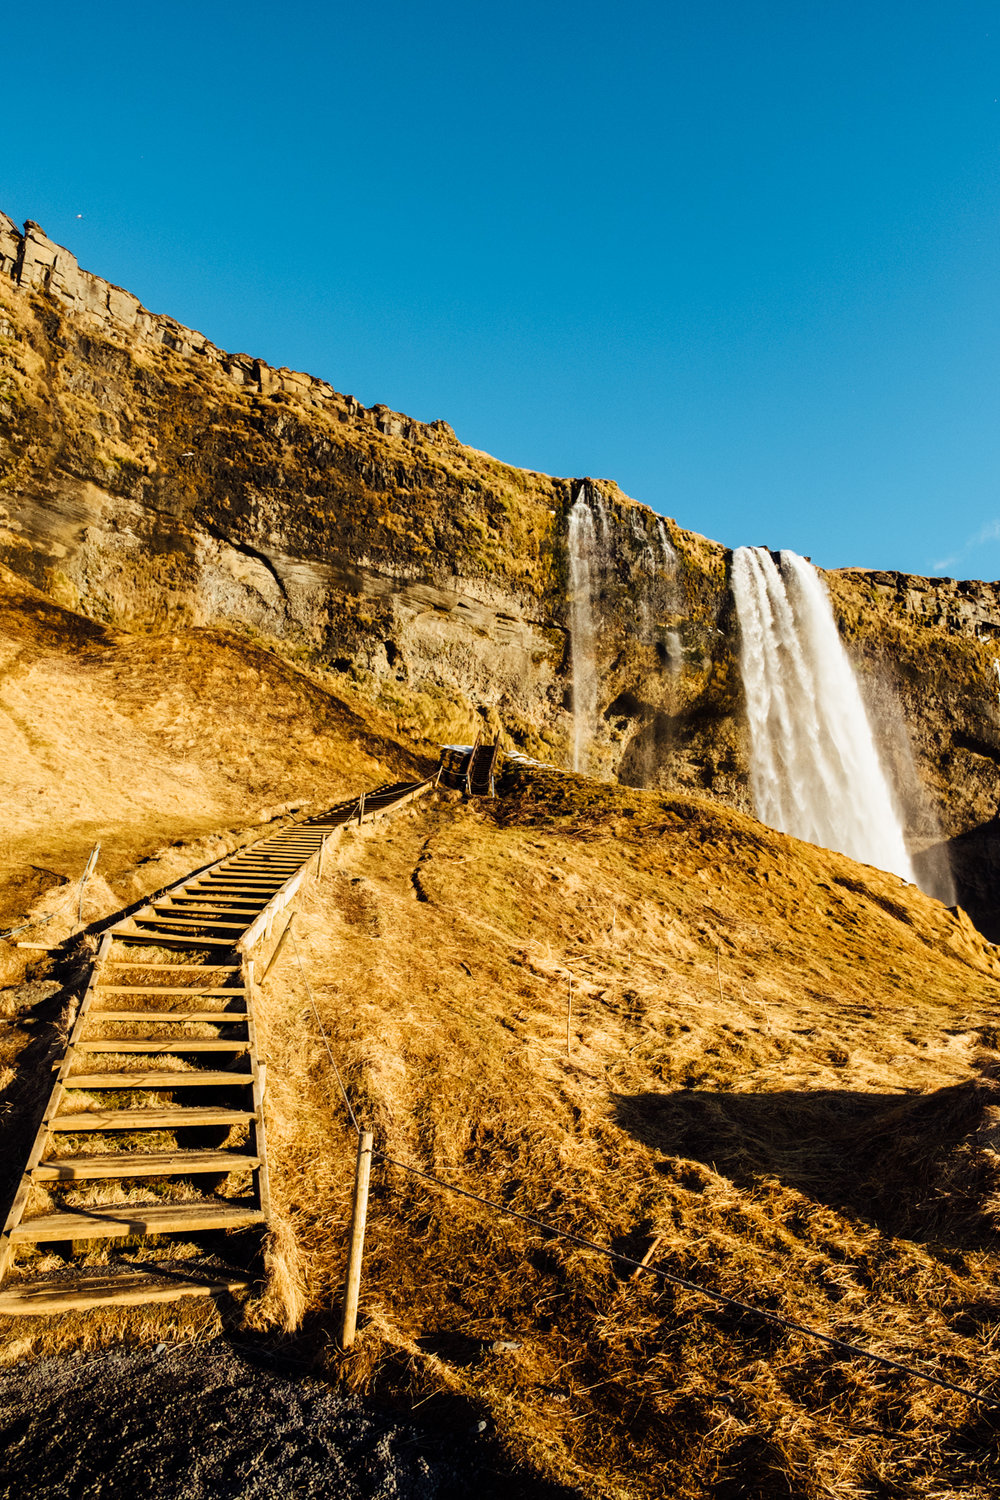 The stairs leading up to the waterfall. We were so lucky to experience some sunshine on our first day in Iceland. It's pretty rare all year round, but especially in winter.